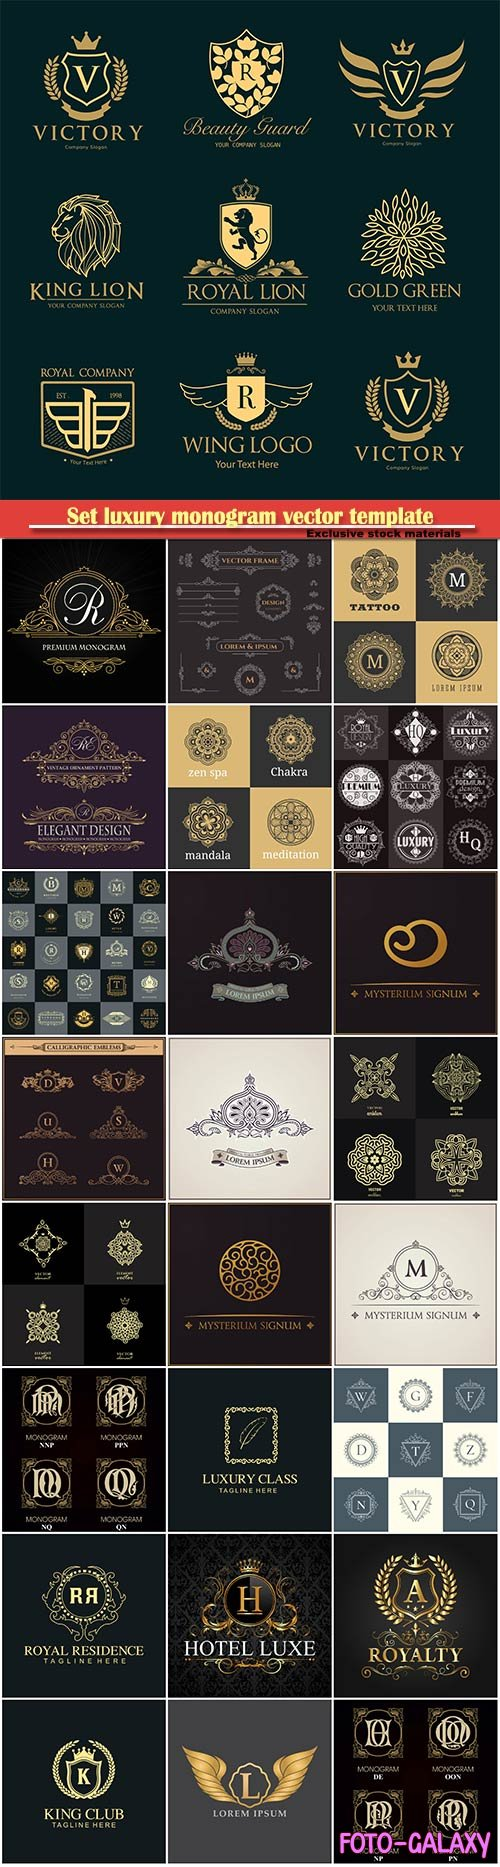 Set luxury monogram vector template, logos, badges, symbols # 2